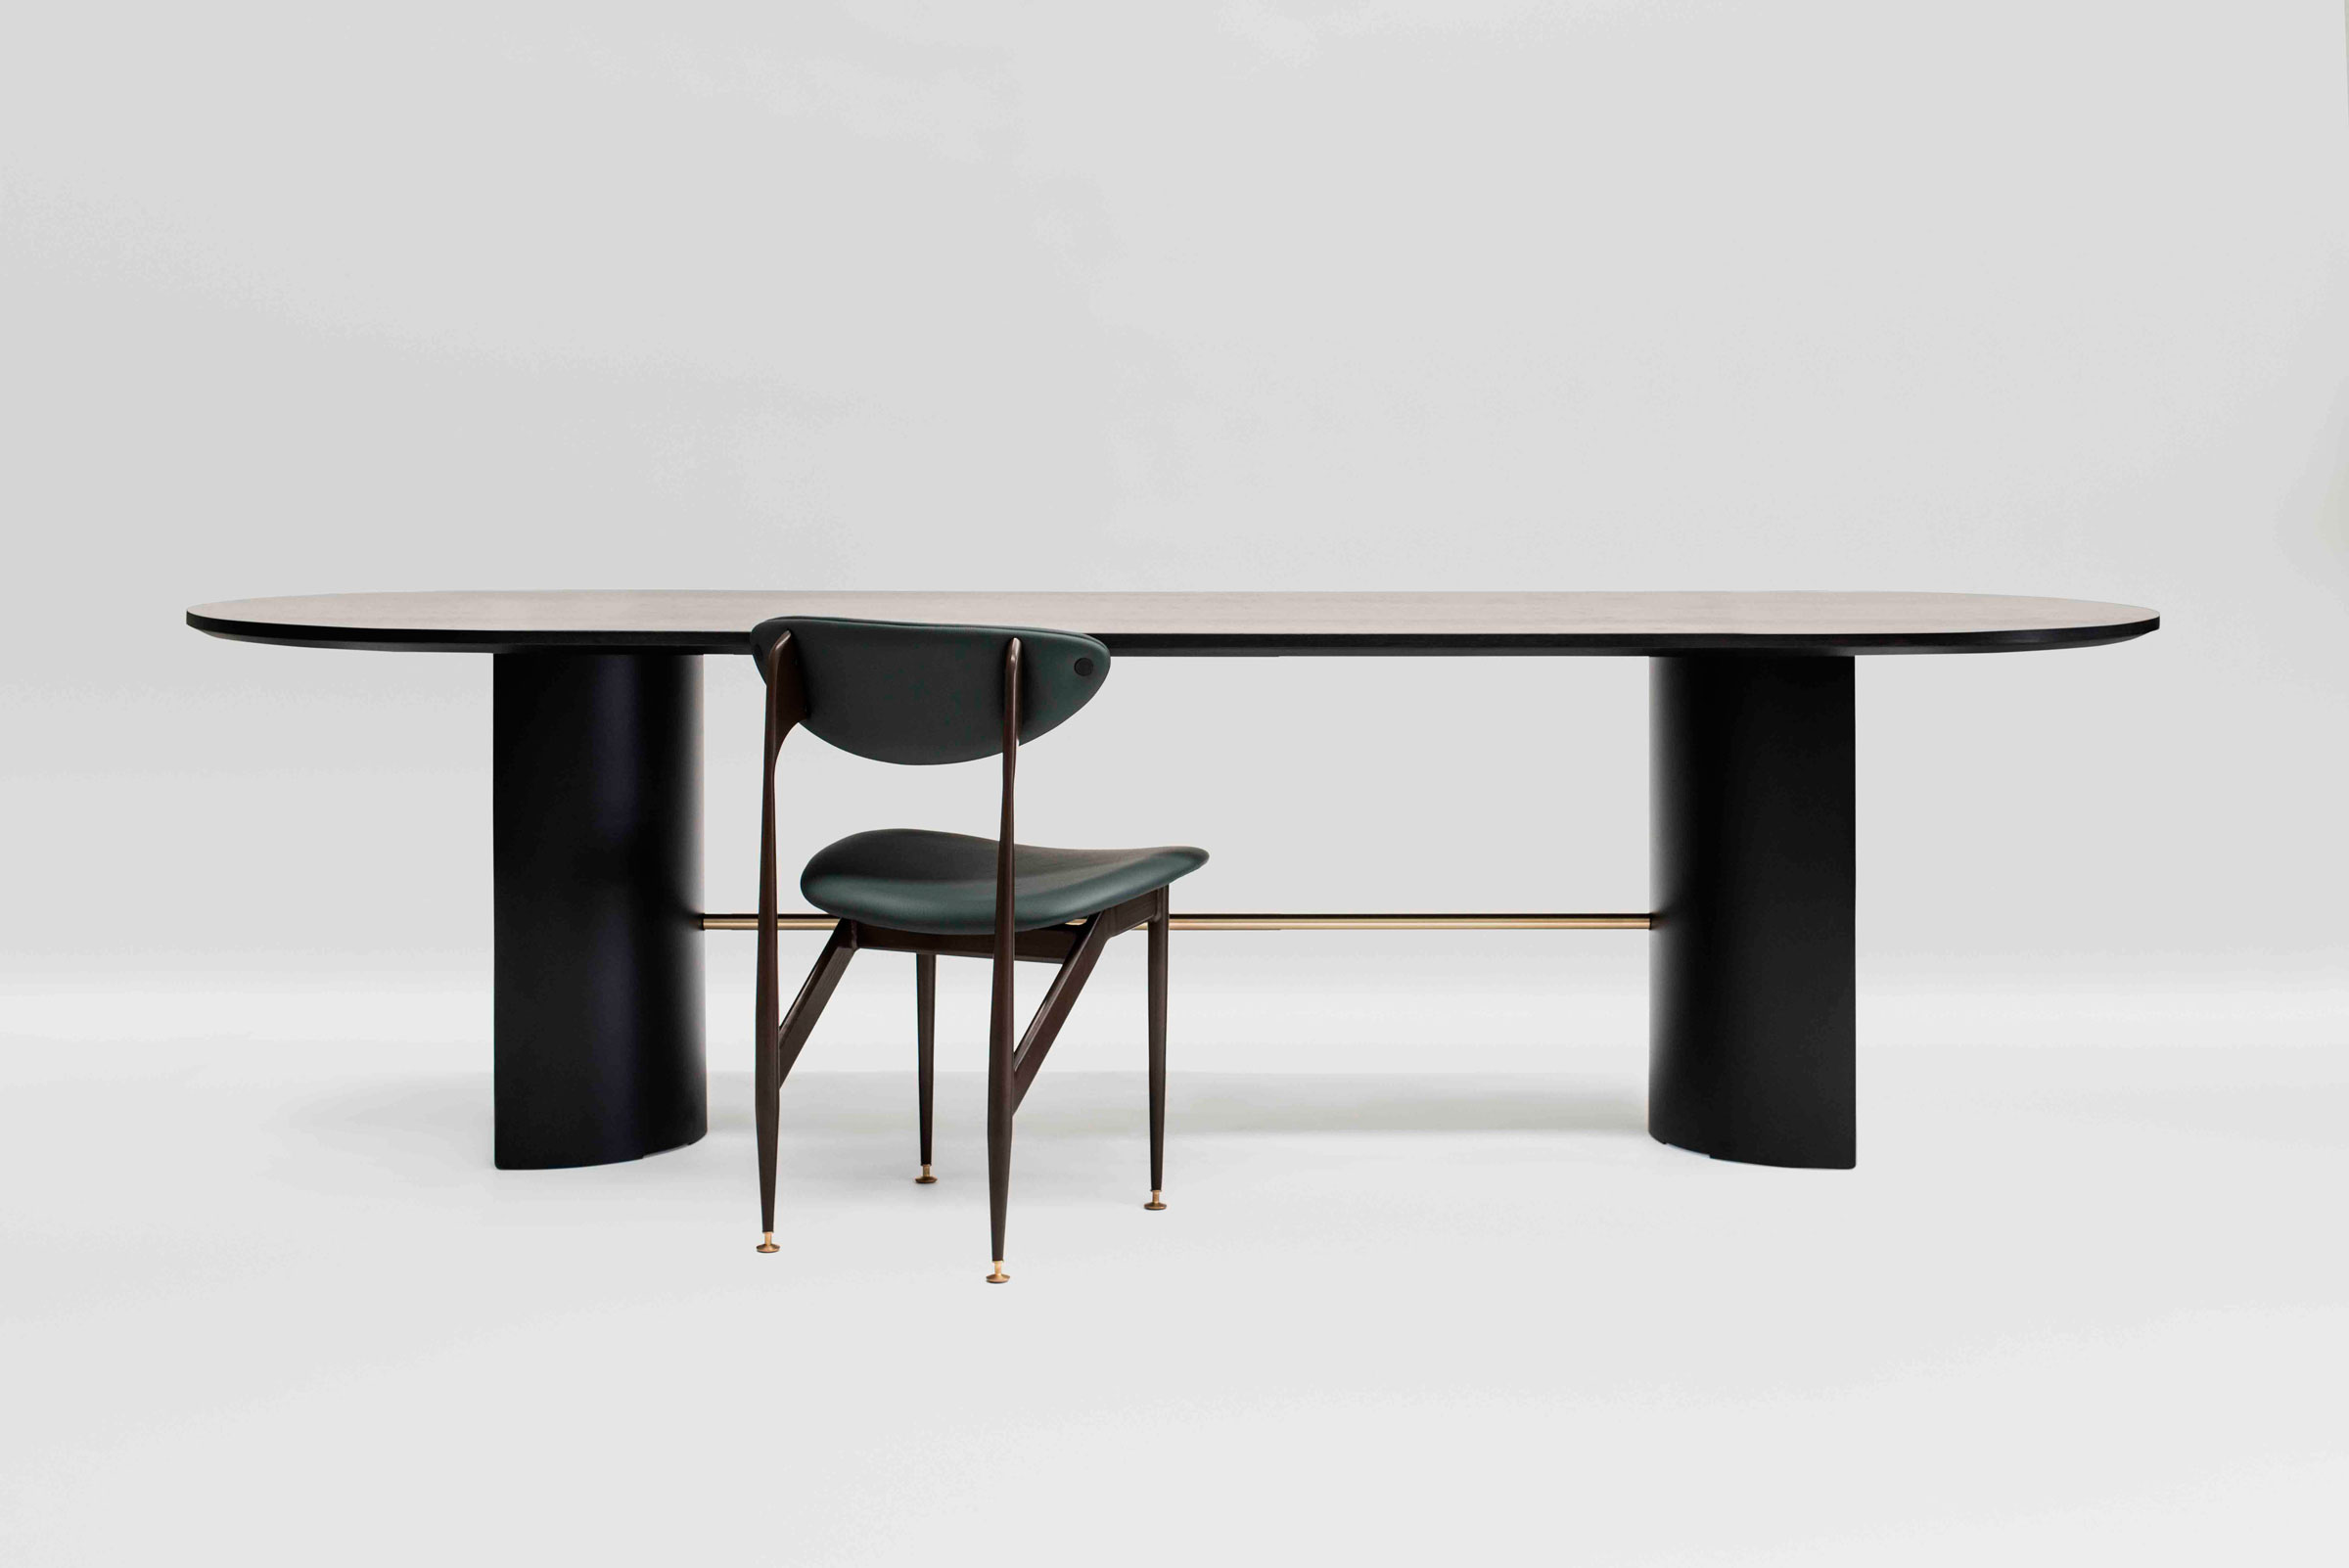 GRAZIA AND CO STAMP TABLE SCAPE CHAIR GESTALT NEW YORK